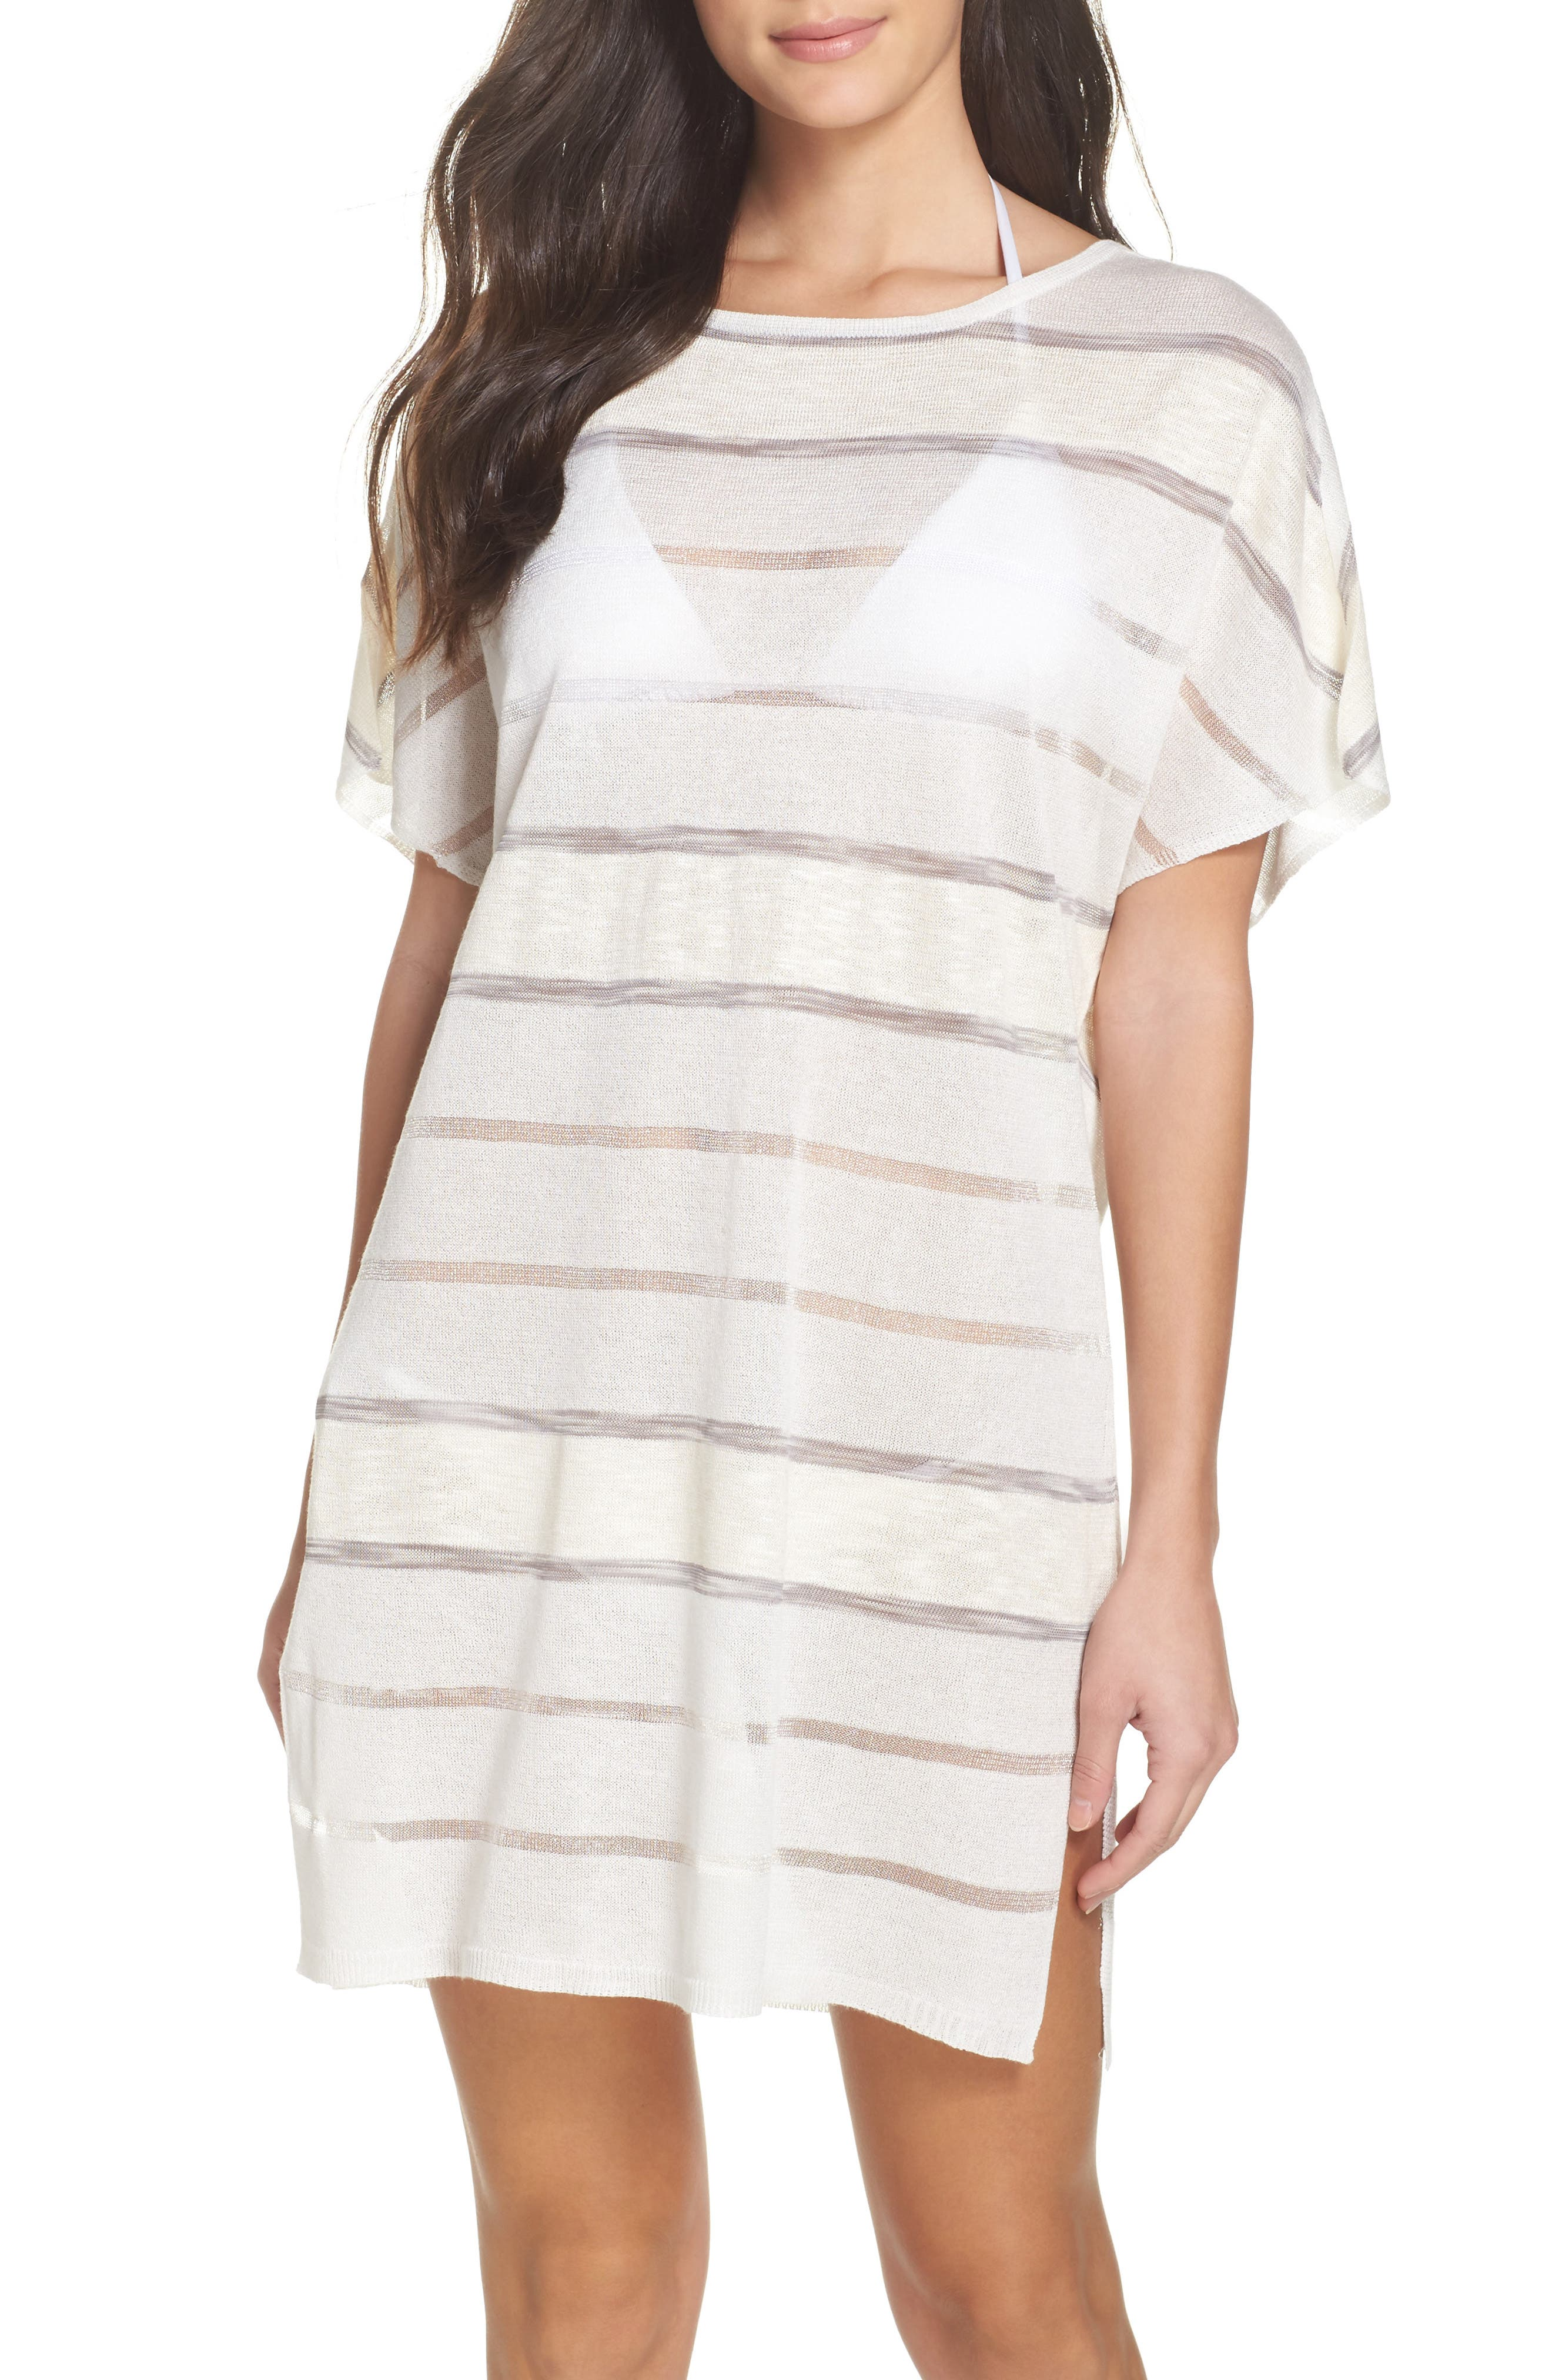 Bay Breeze Cover-Up Tunic,                         Main,                         color, White